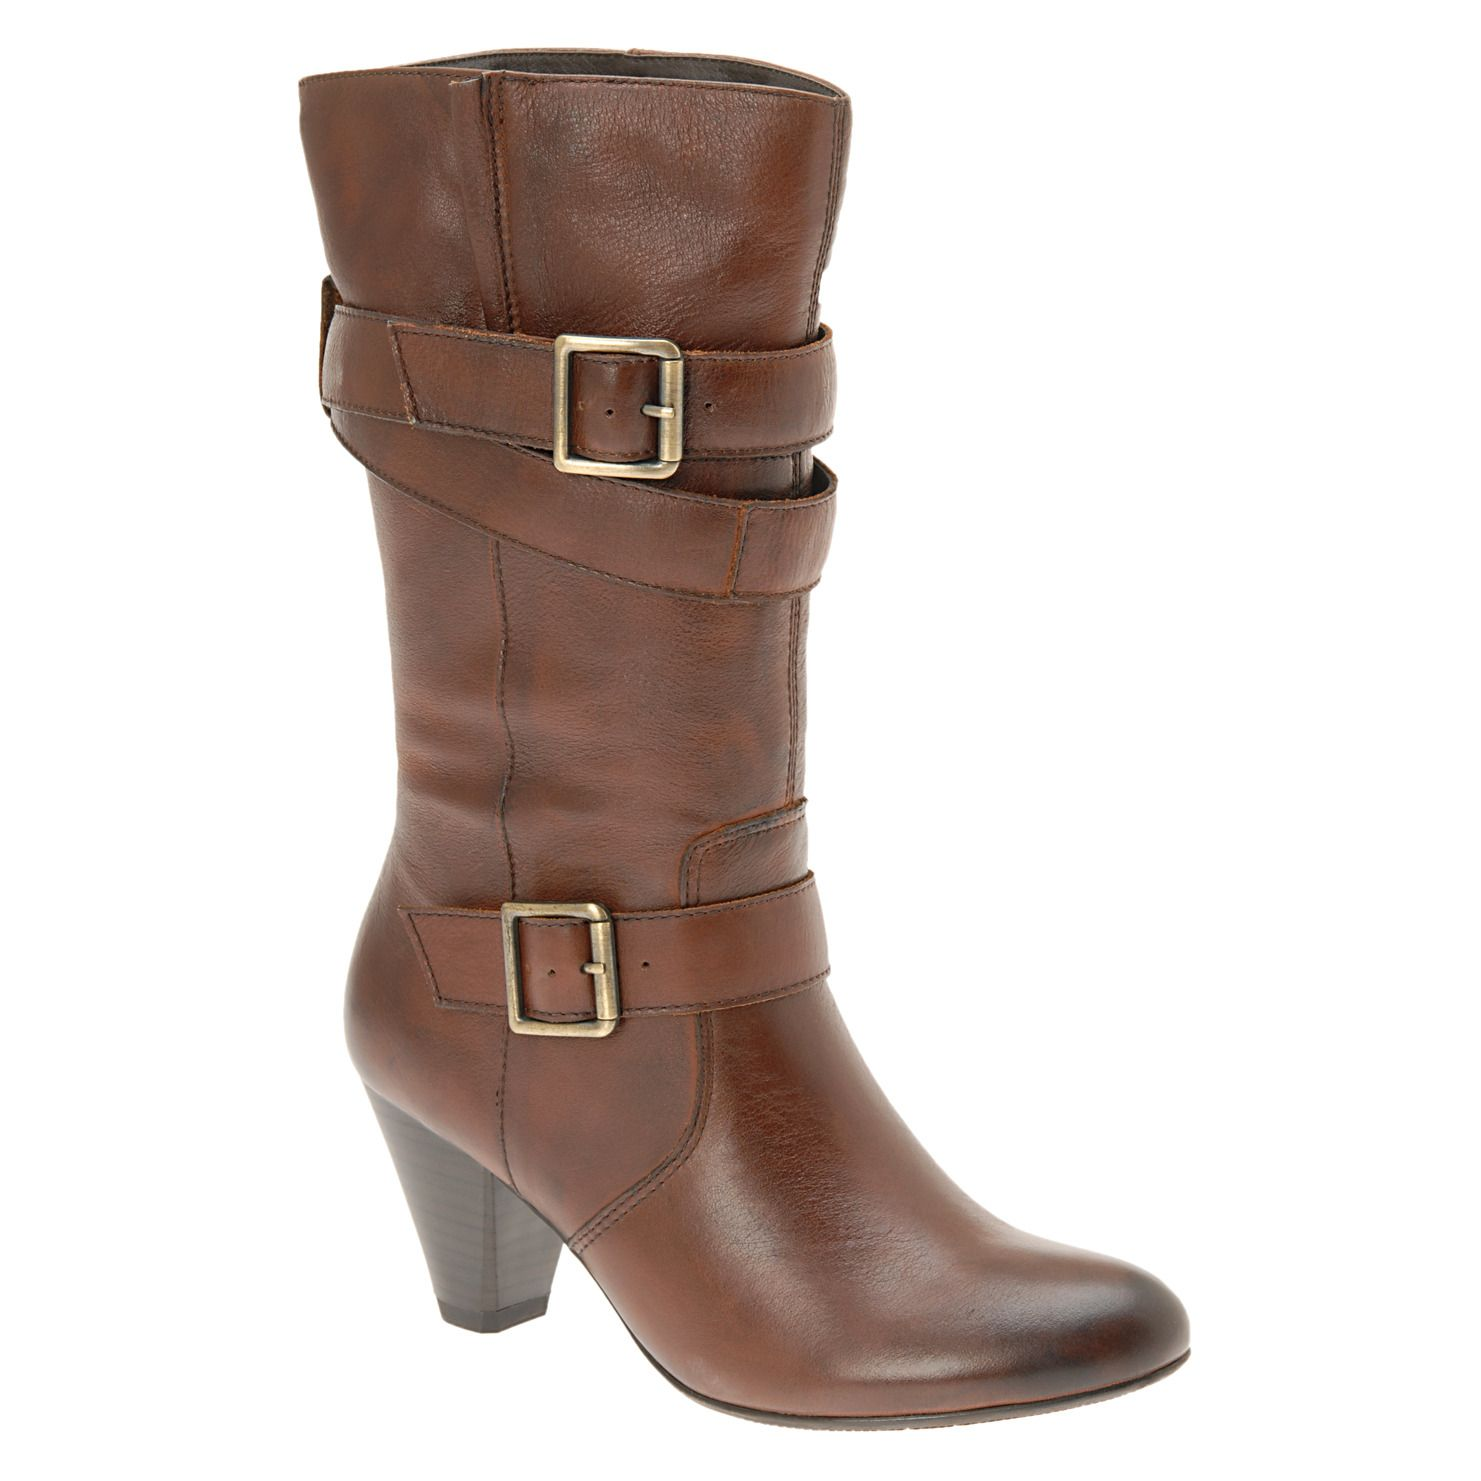 I got these boots yesterday from Call It Spring -- Aldo's sister company.